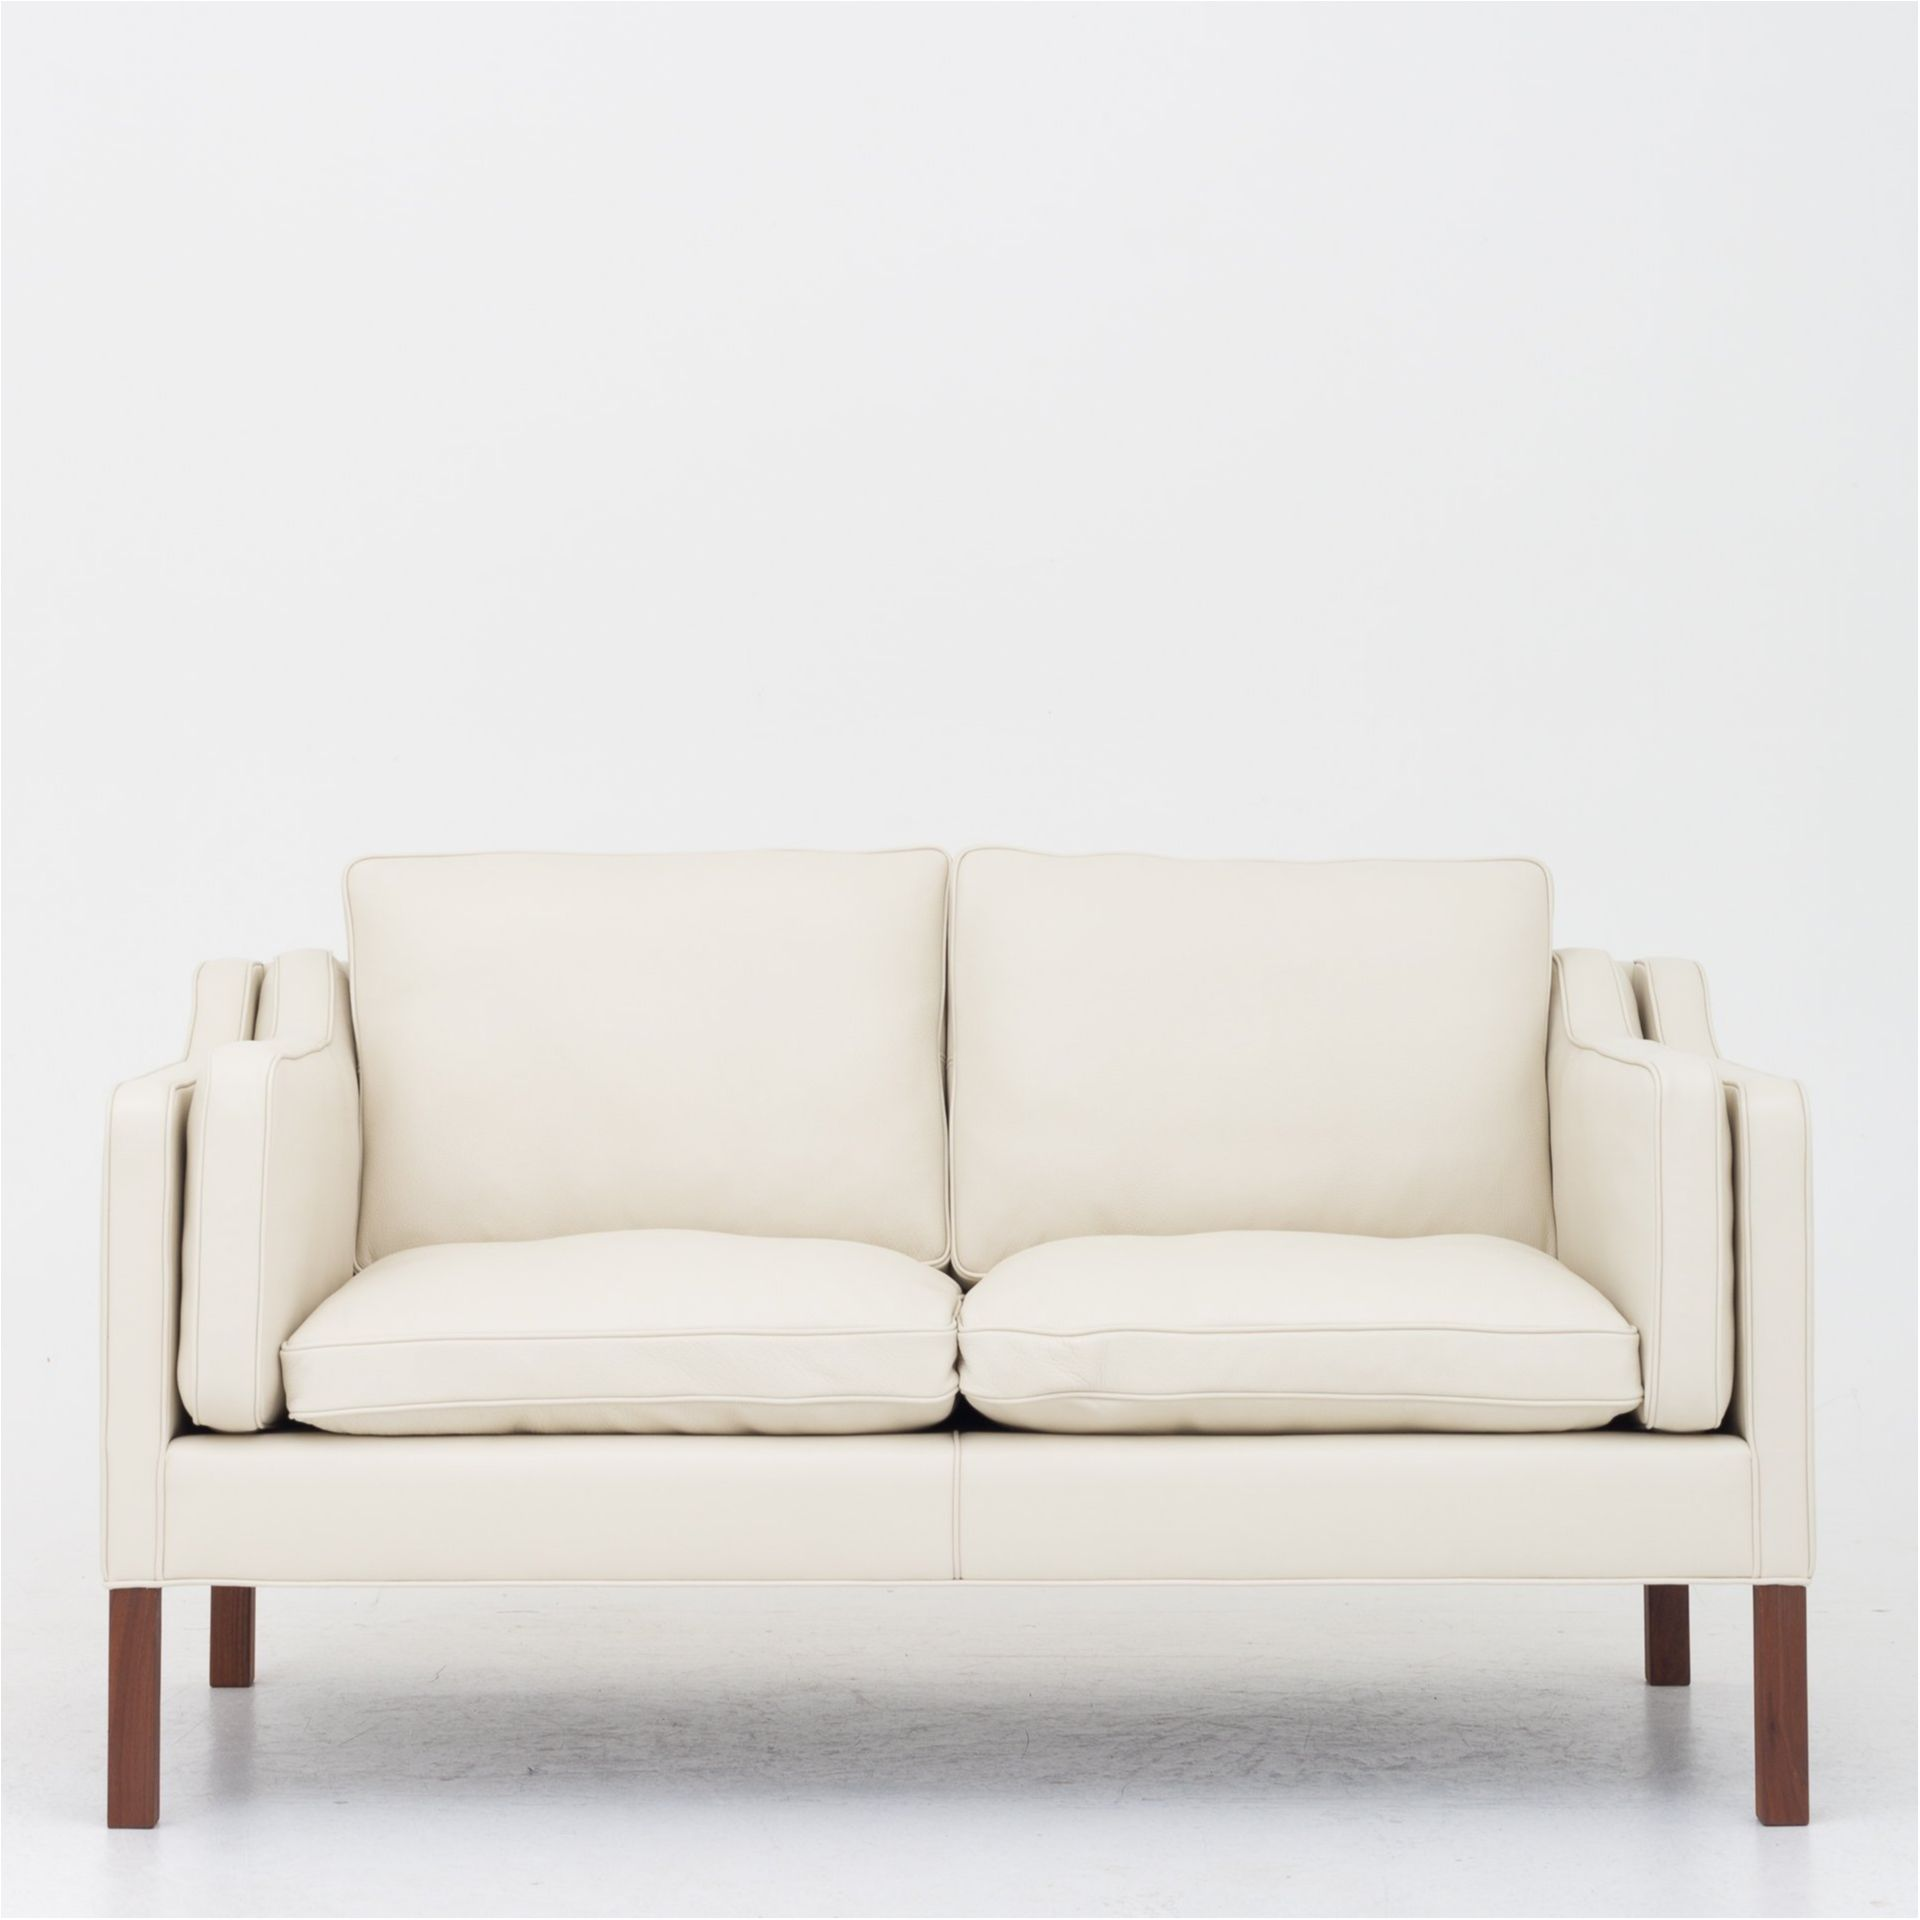 Picture of: Bm 2212 Reupholstered Sofa